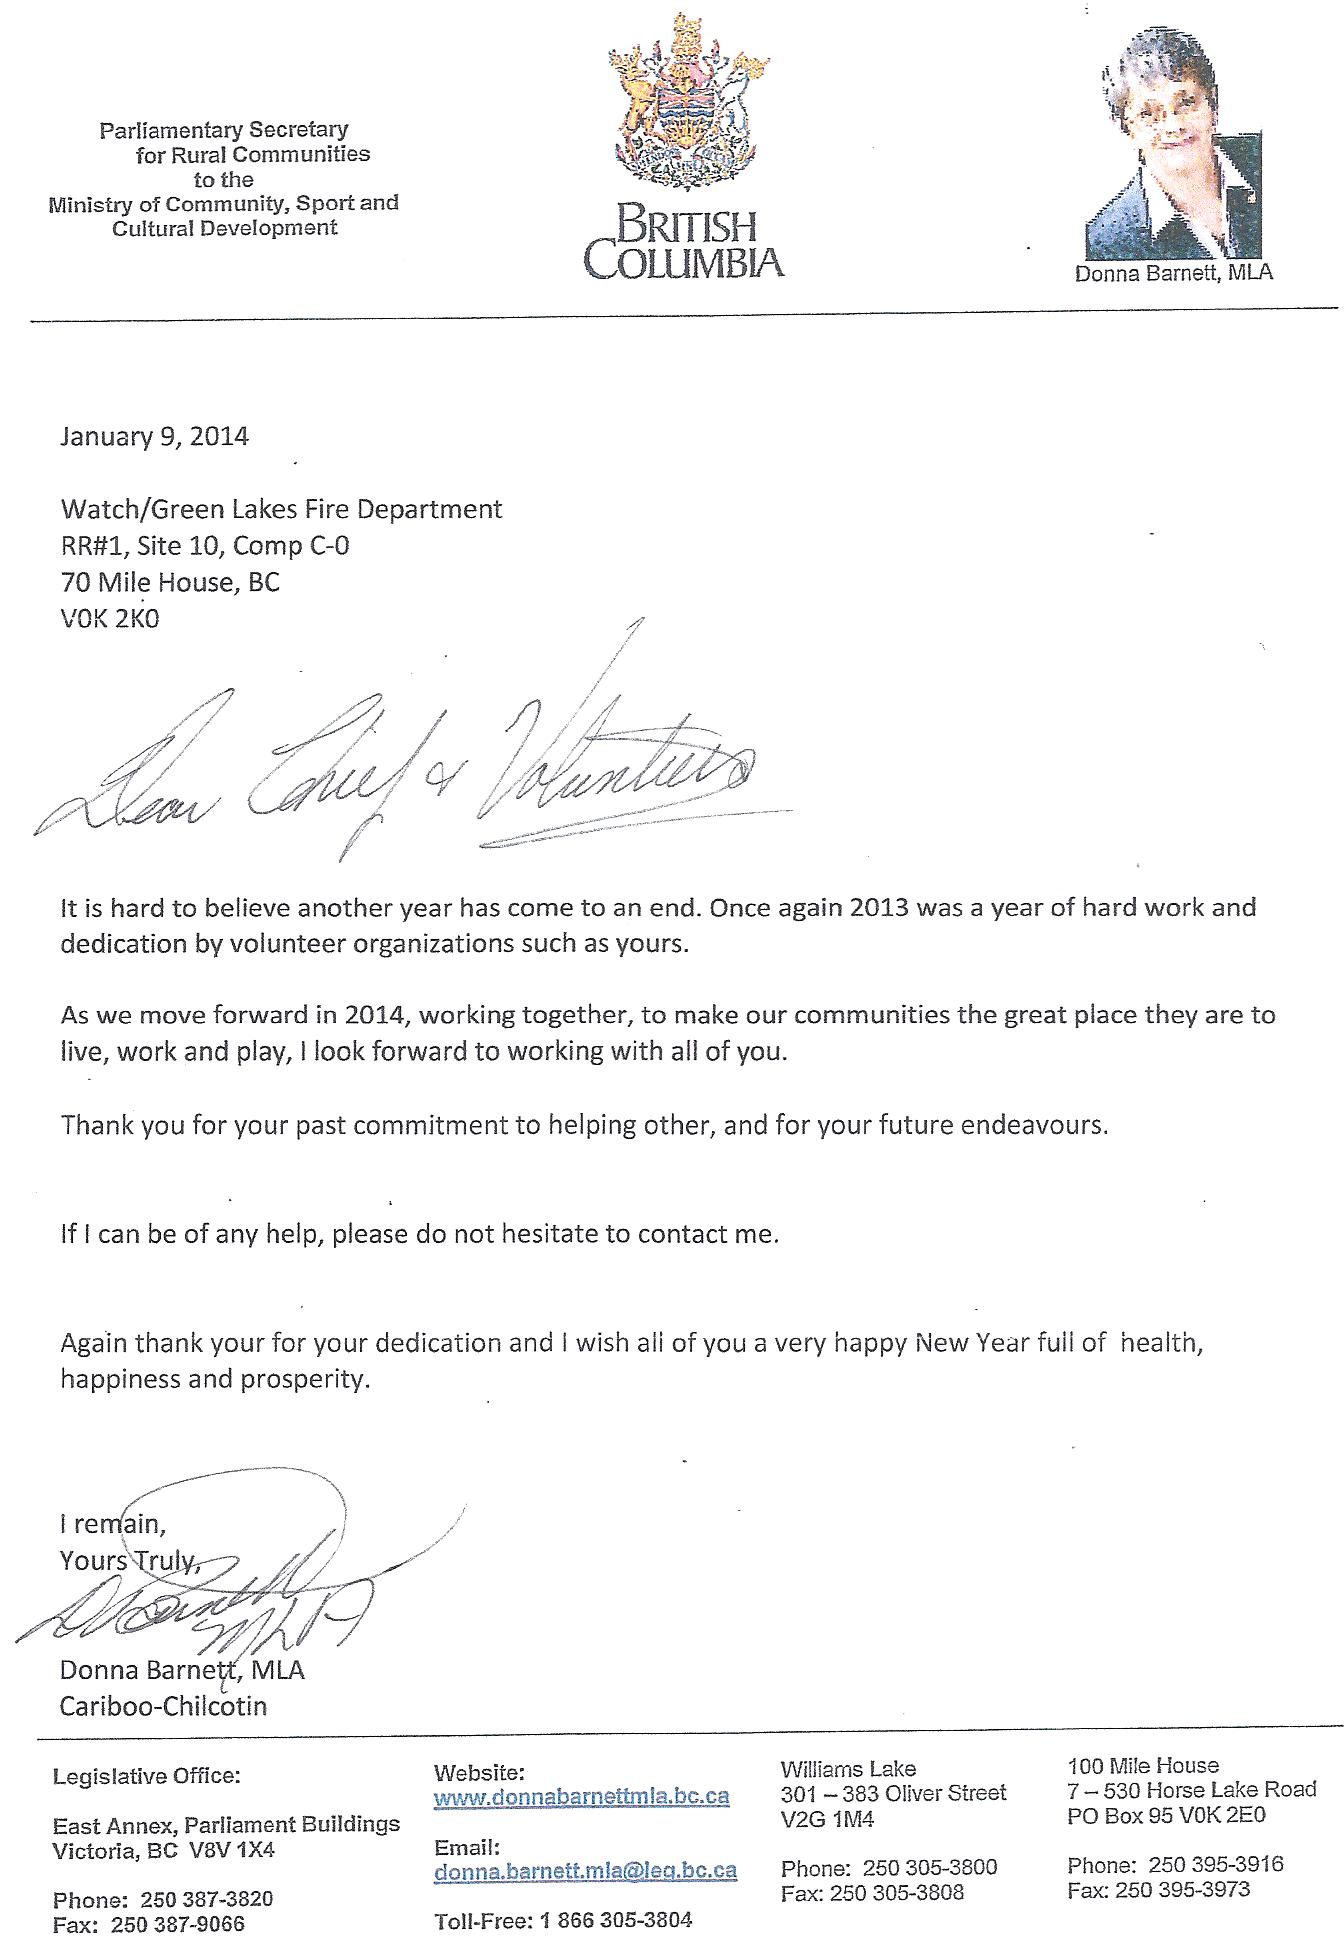 Sample Letter Of Appreciation For A Job Well Done from www.wlnglfiredept.org